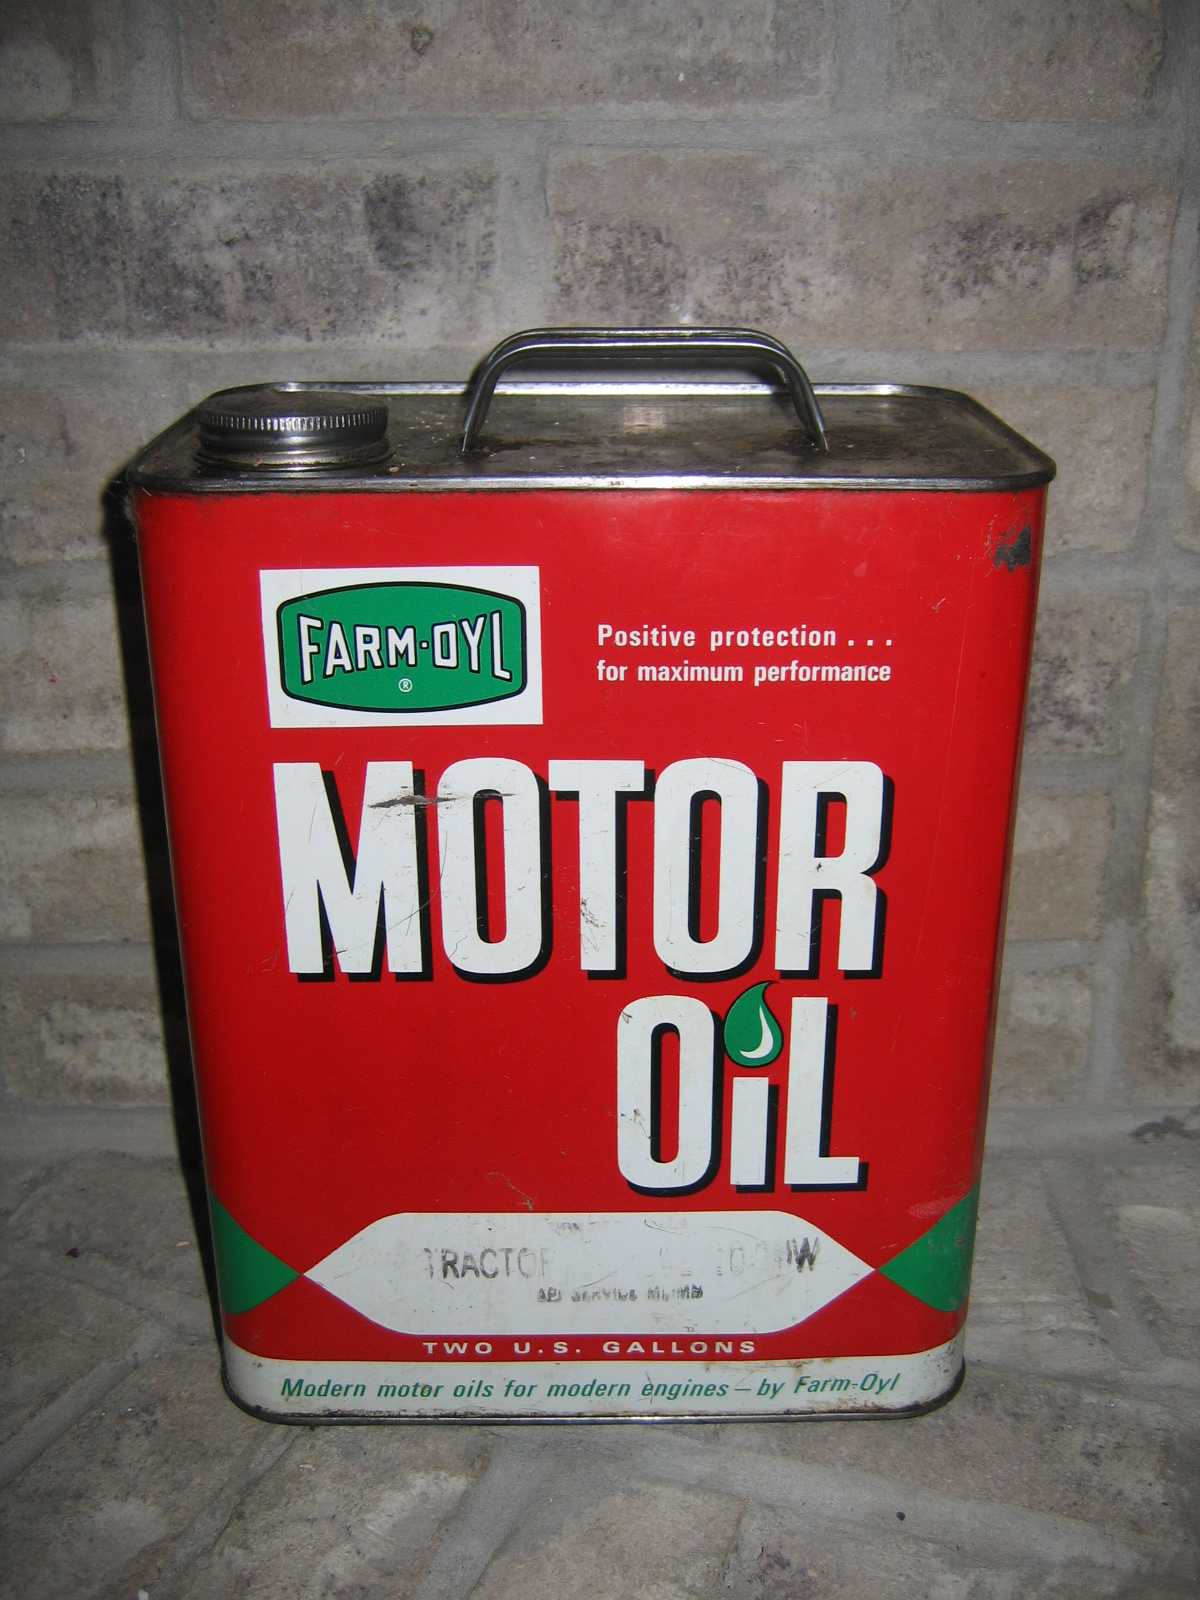 Collectible farm oyl motor oil tin can item 769 for sale classifieds Sale on motor oil